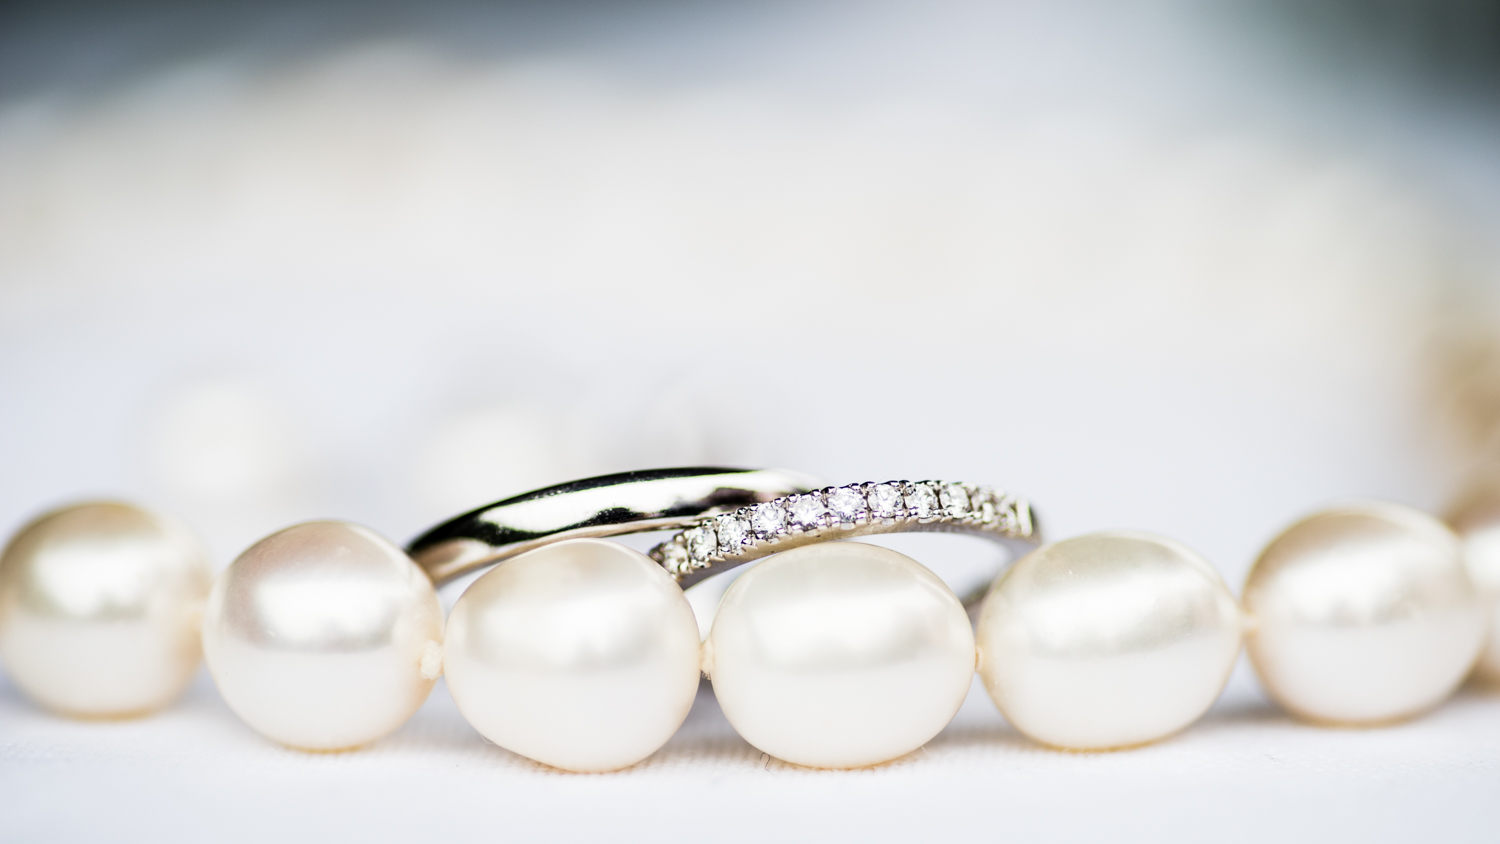 Pearls and rings